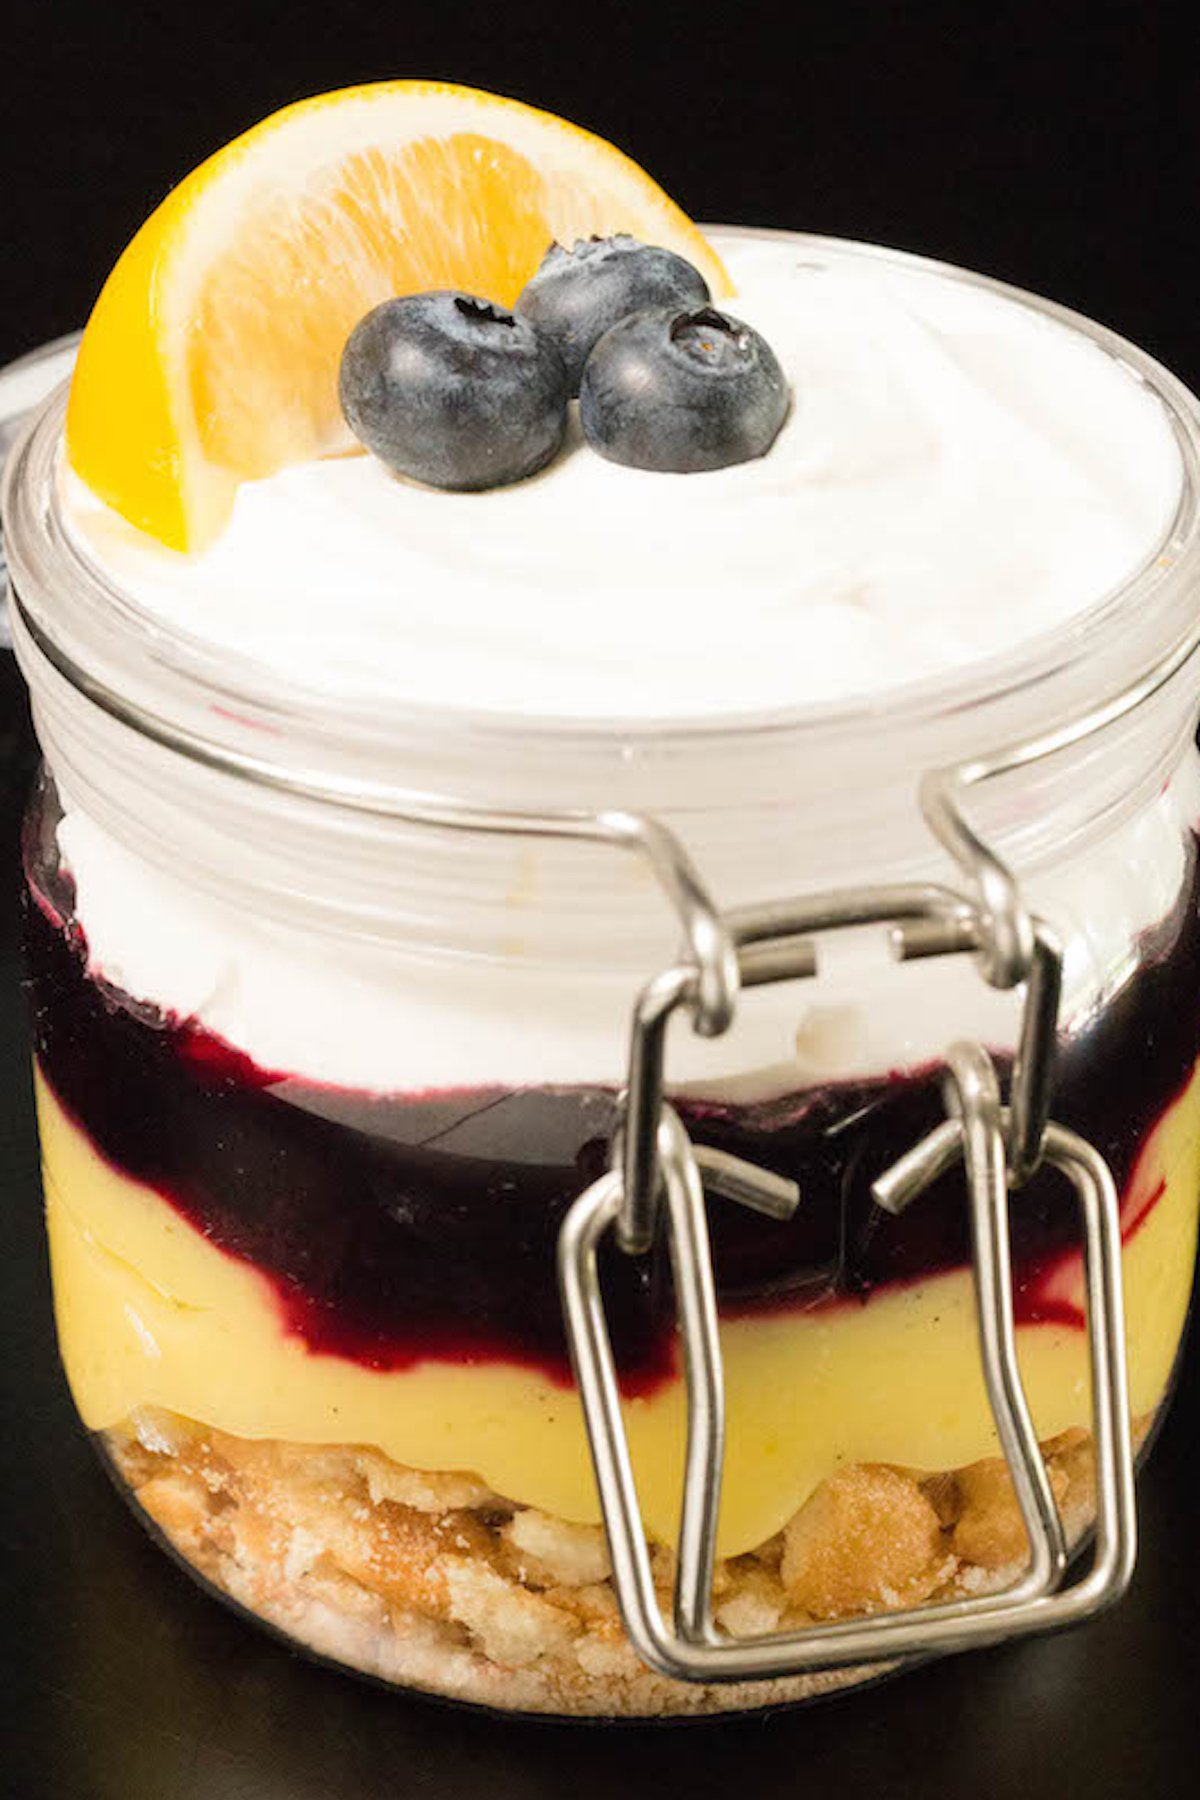 A small glass jar filled with layers of nilla wafers, lemon curd, blueberry compote and whipped cream sits on a black background.